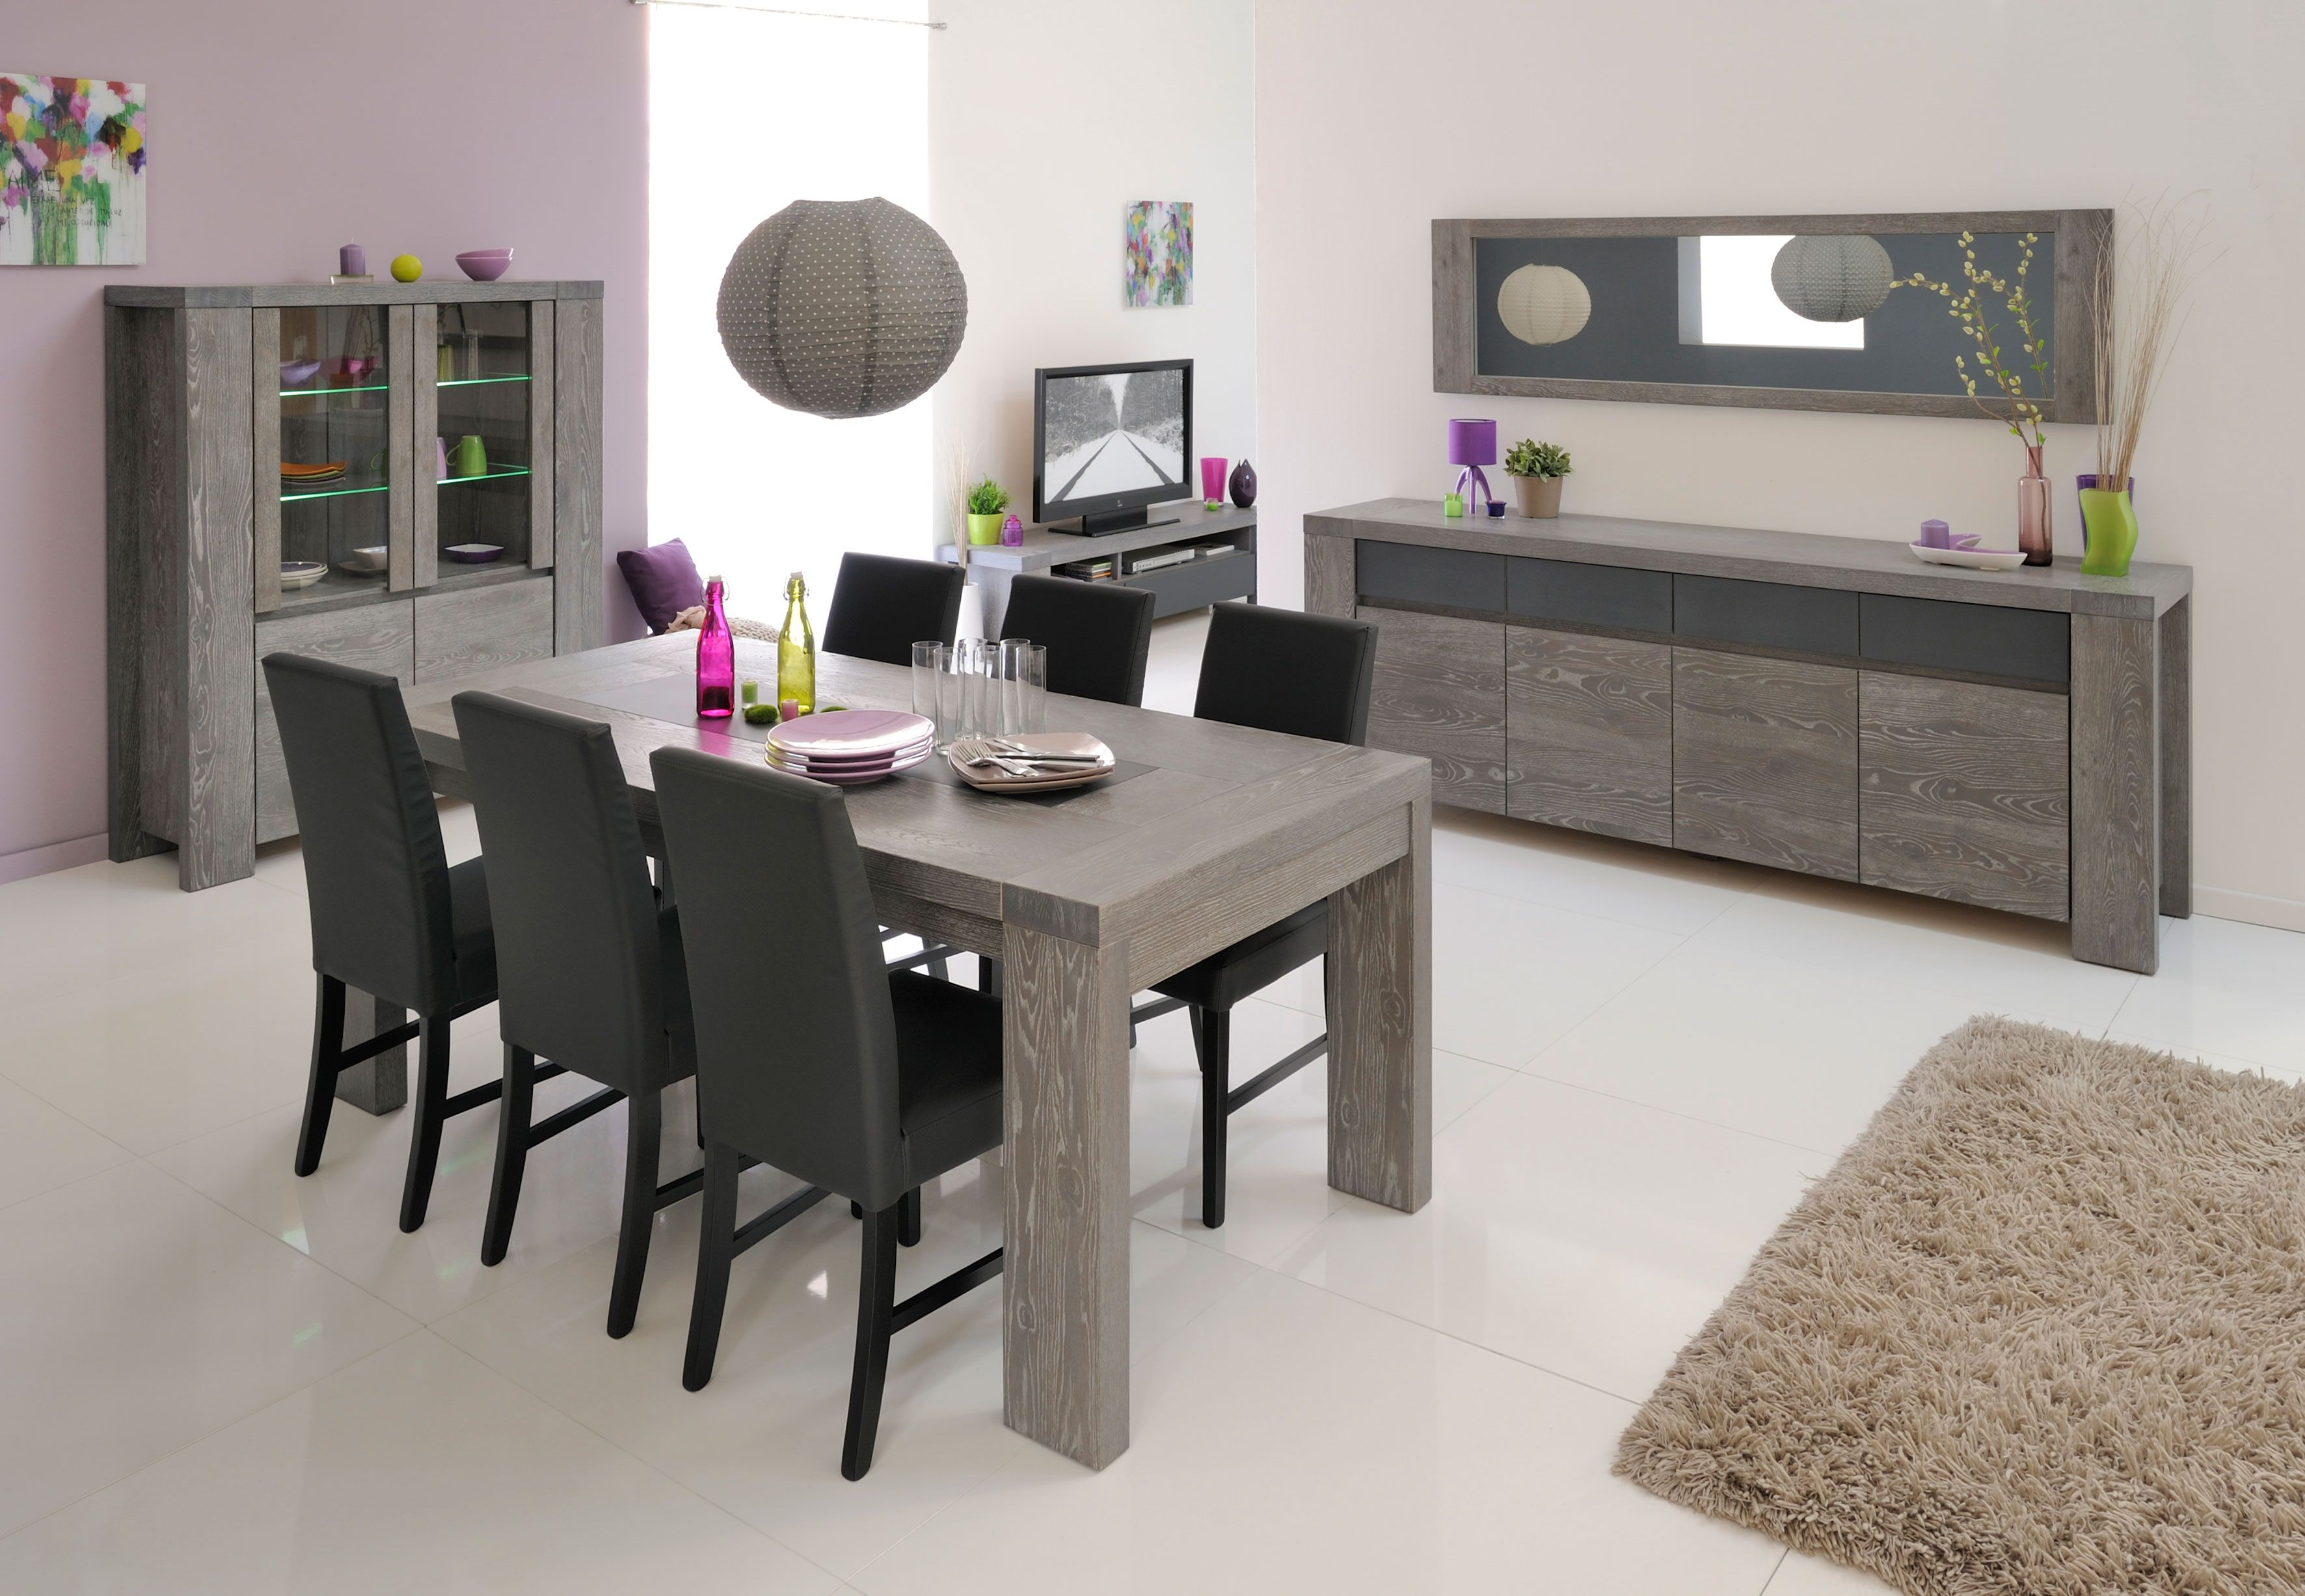 Mobila Sufragerie Moderna Stejar Bristol 2 Ron0 00 Mobilena Dining Table Dining Table In Kitchen Living Room Colors